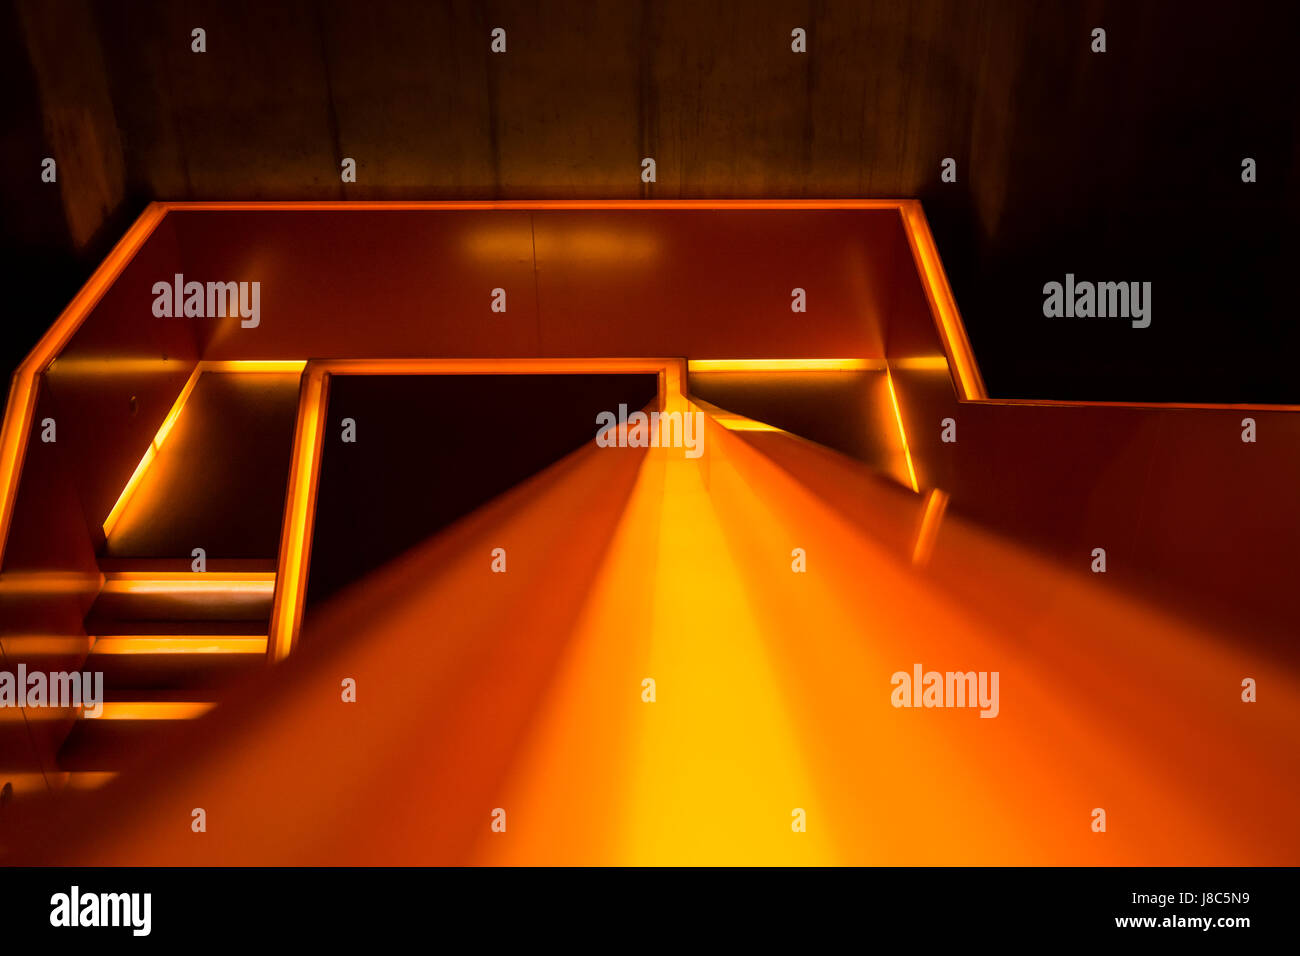 Illuminated staircase of the museum in the world heritage site 'Zeche Zollverein', a closed coke oven plant - Stock Image